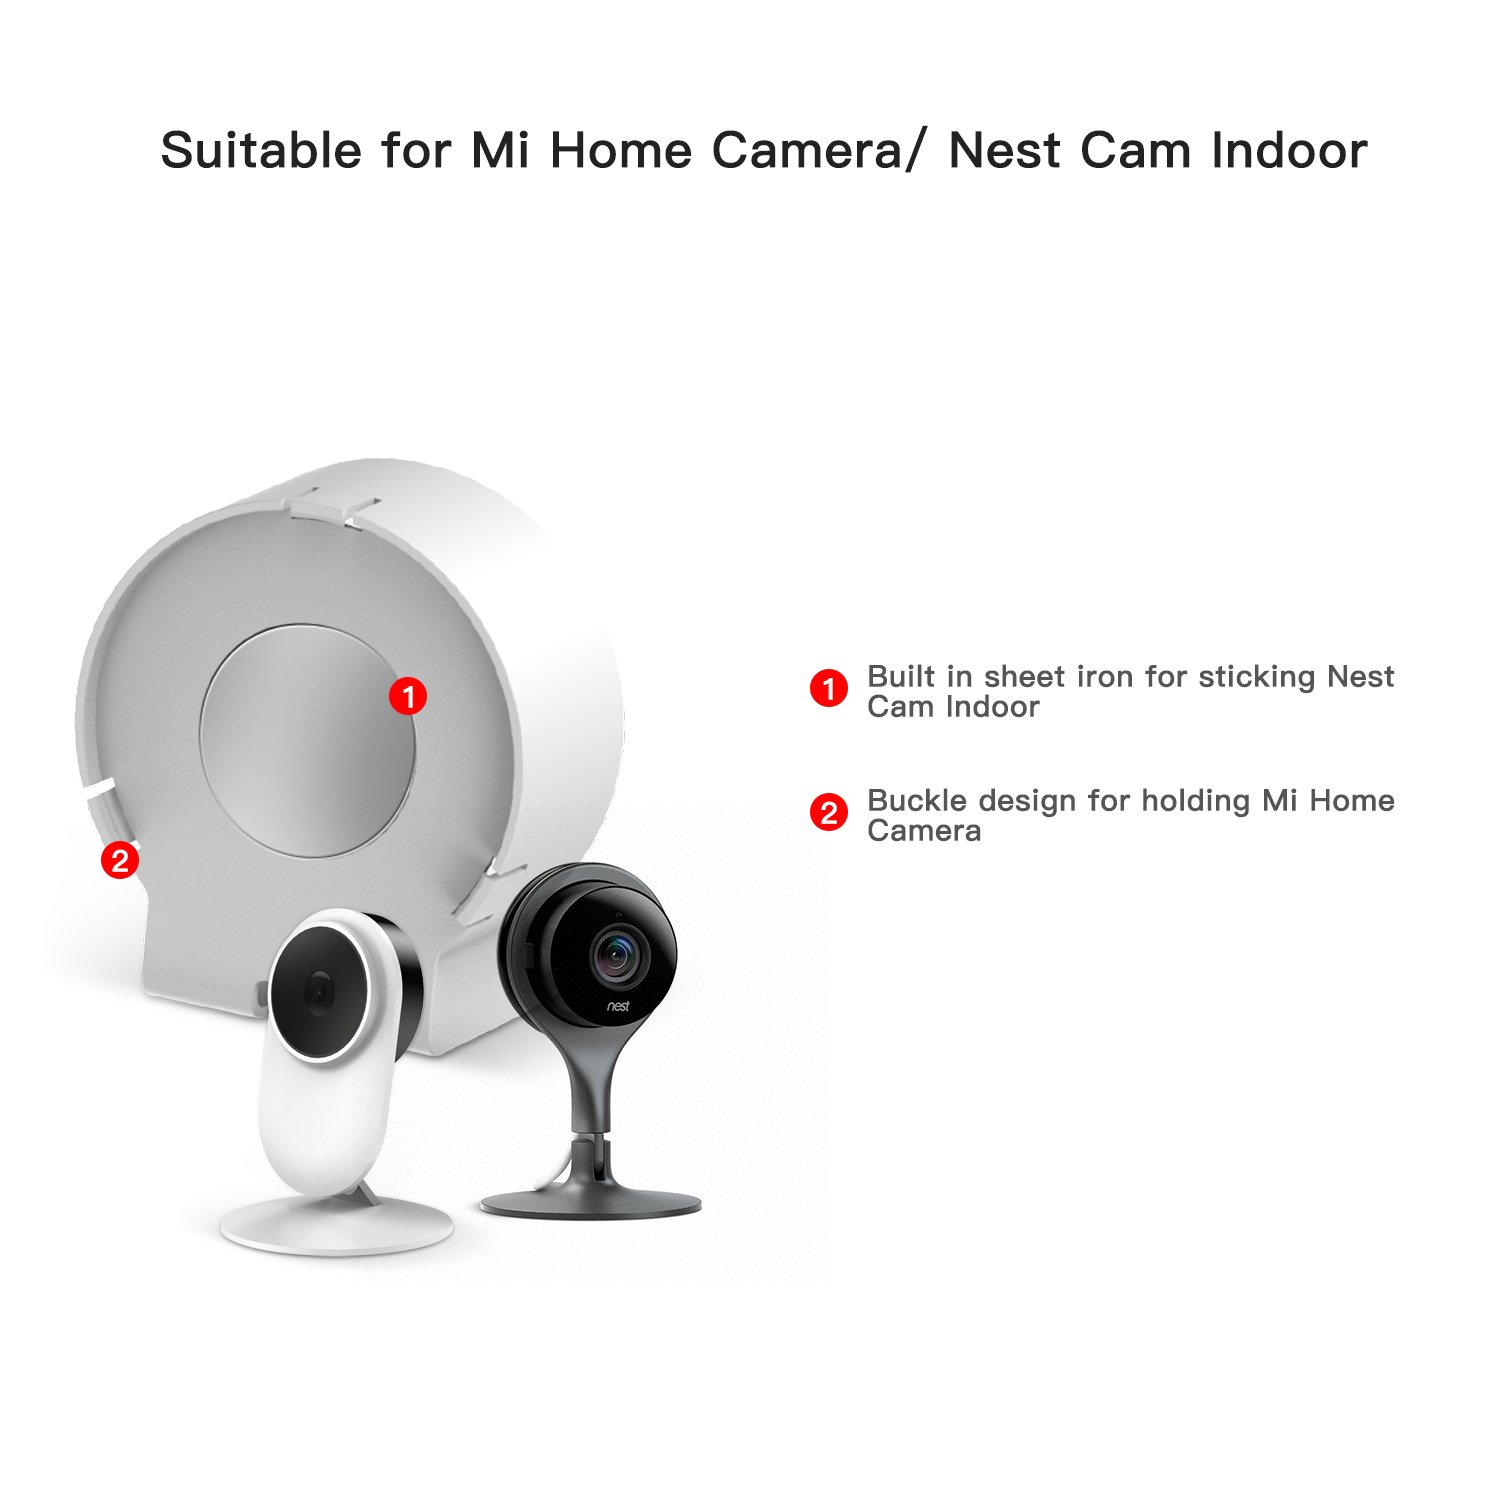 Nest Cam Indoor Mi Home Camera Ac Outlet Mount 360 Degree Swivel Electric Plug Wiring